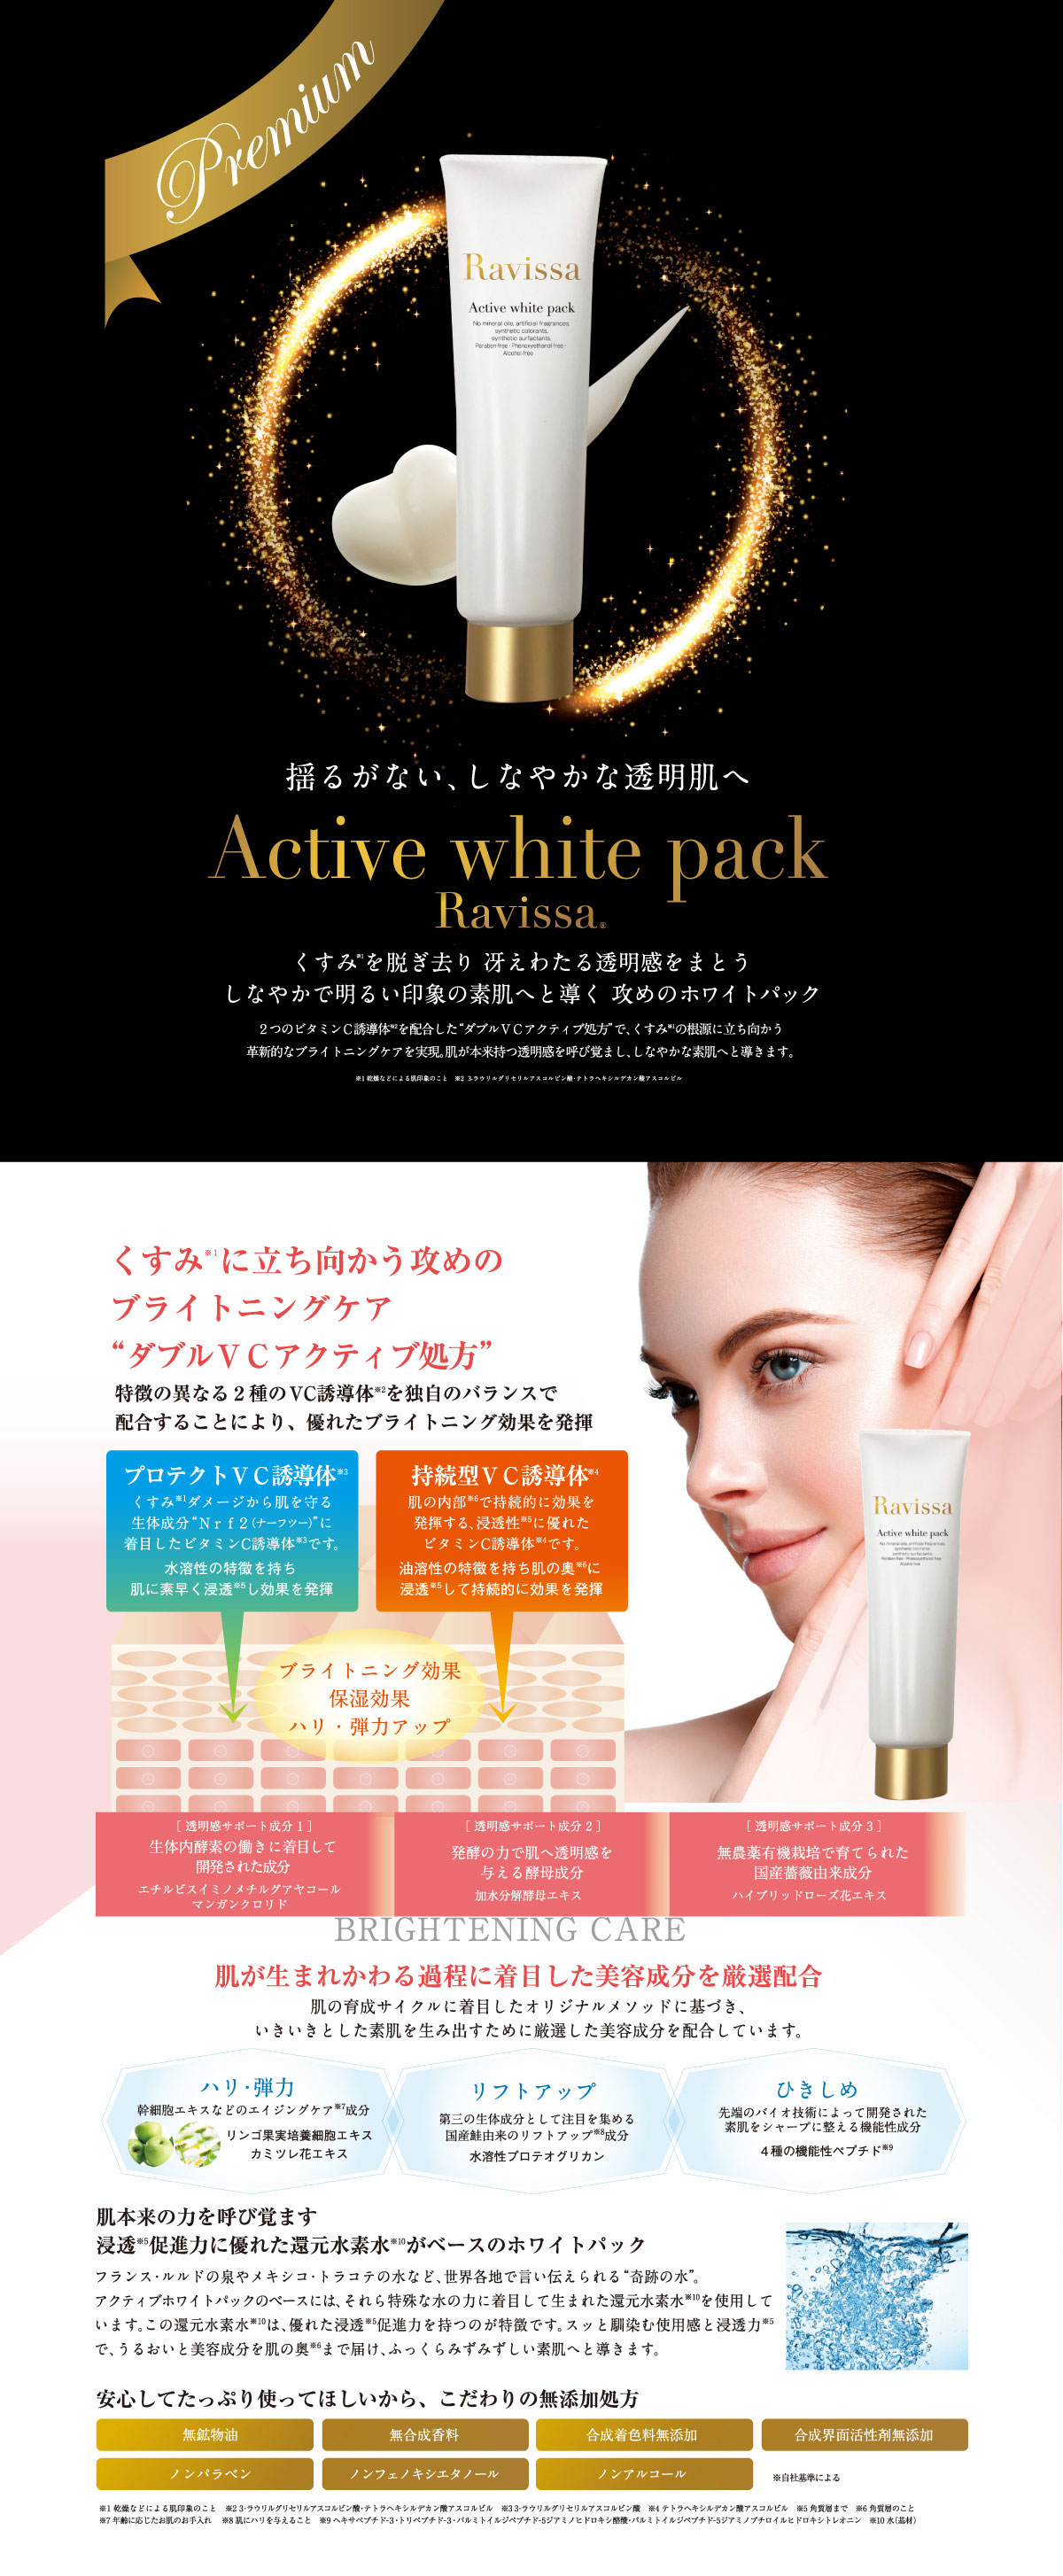 activewhitepack